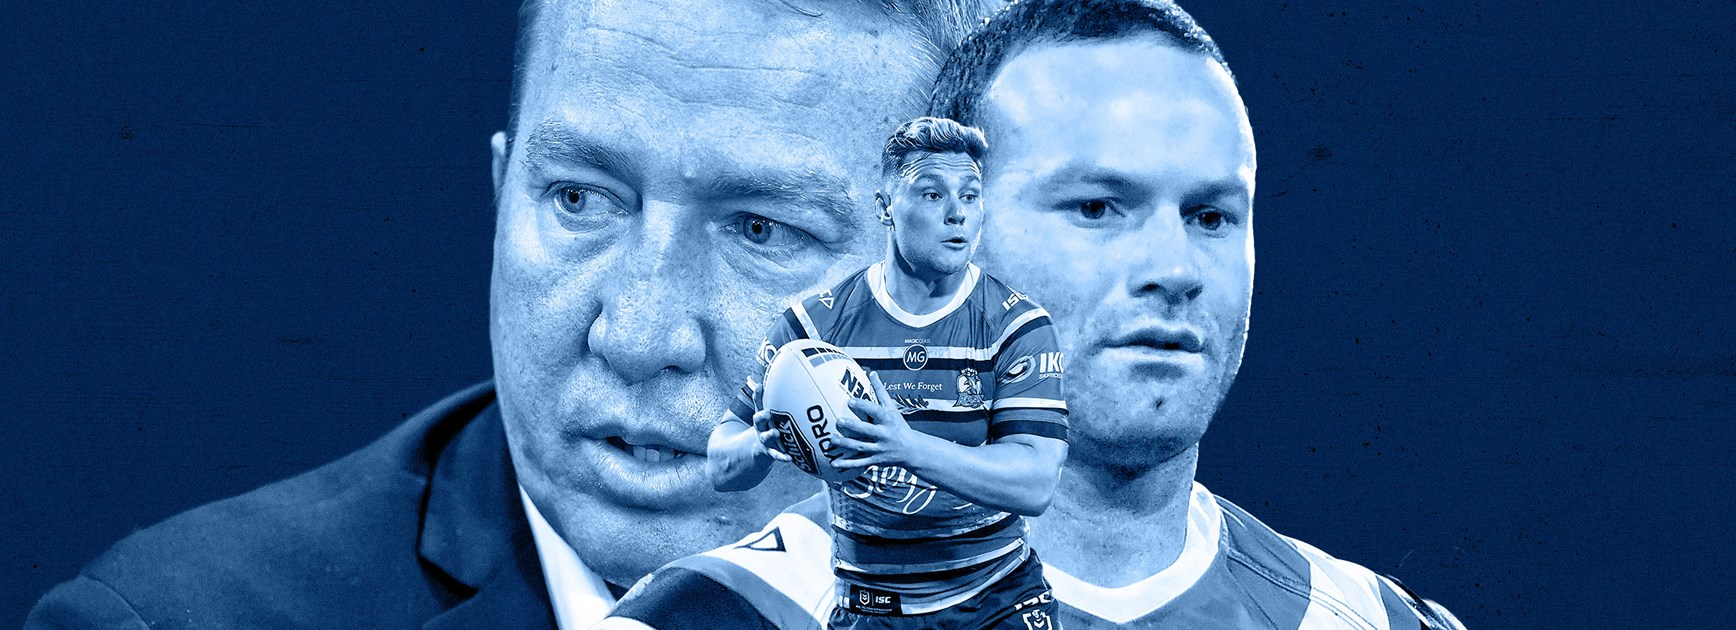 Roosters 2021 season preview: Title threats again after abrupt exit